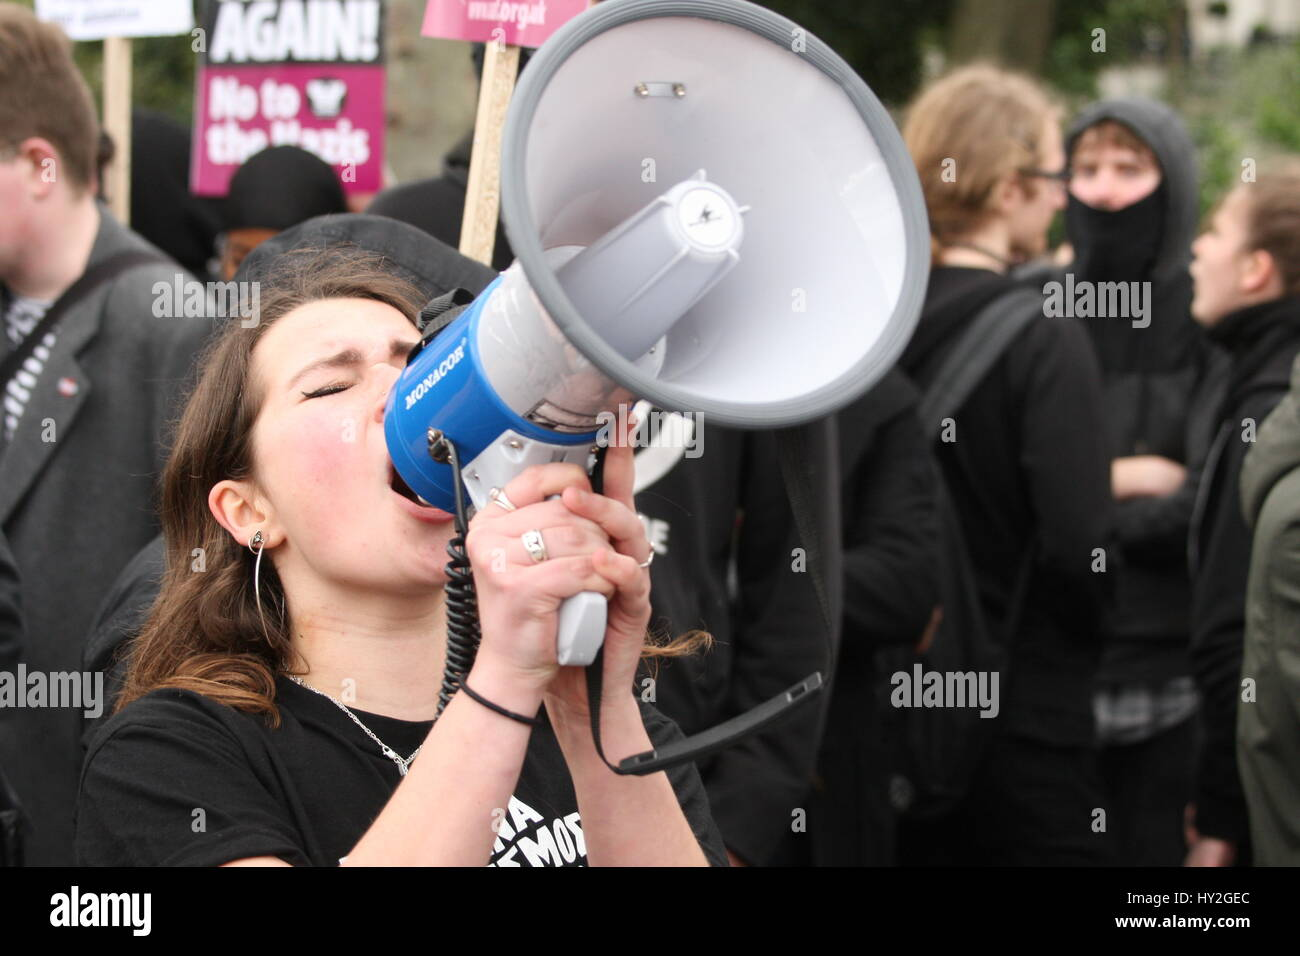 London, UK. April 1st, 2017. A woman chants antyi-racism slogans. Far Right Groups Britain First and the English - Stock Image